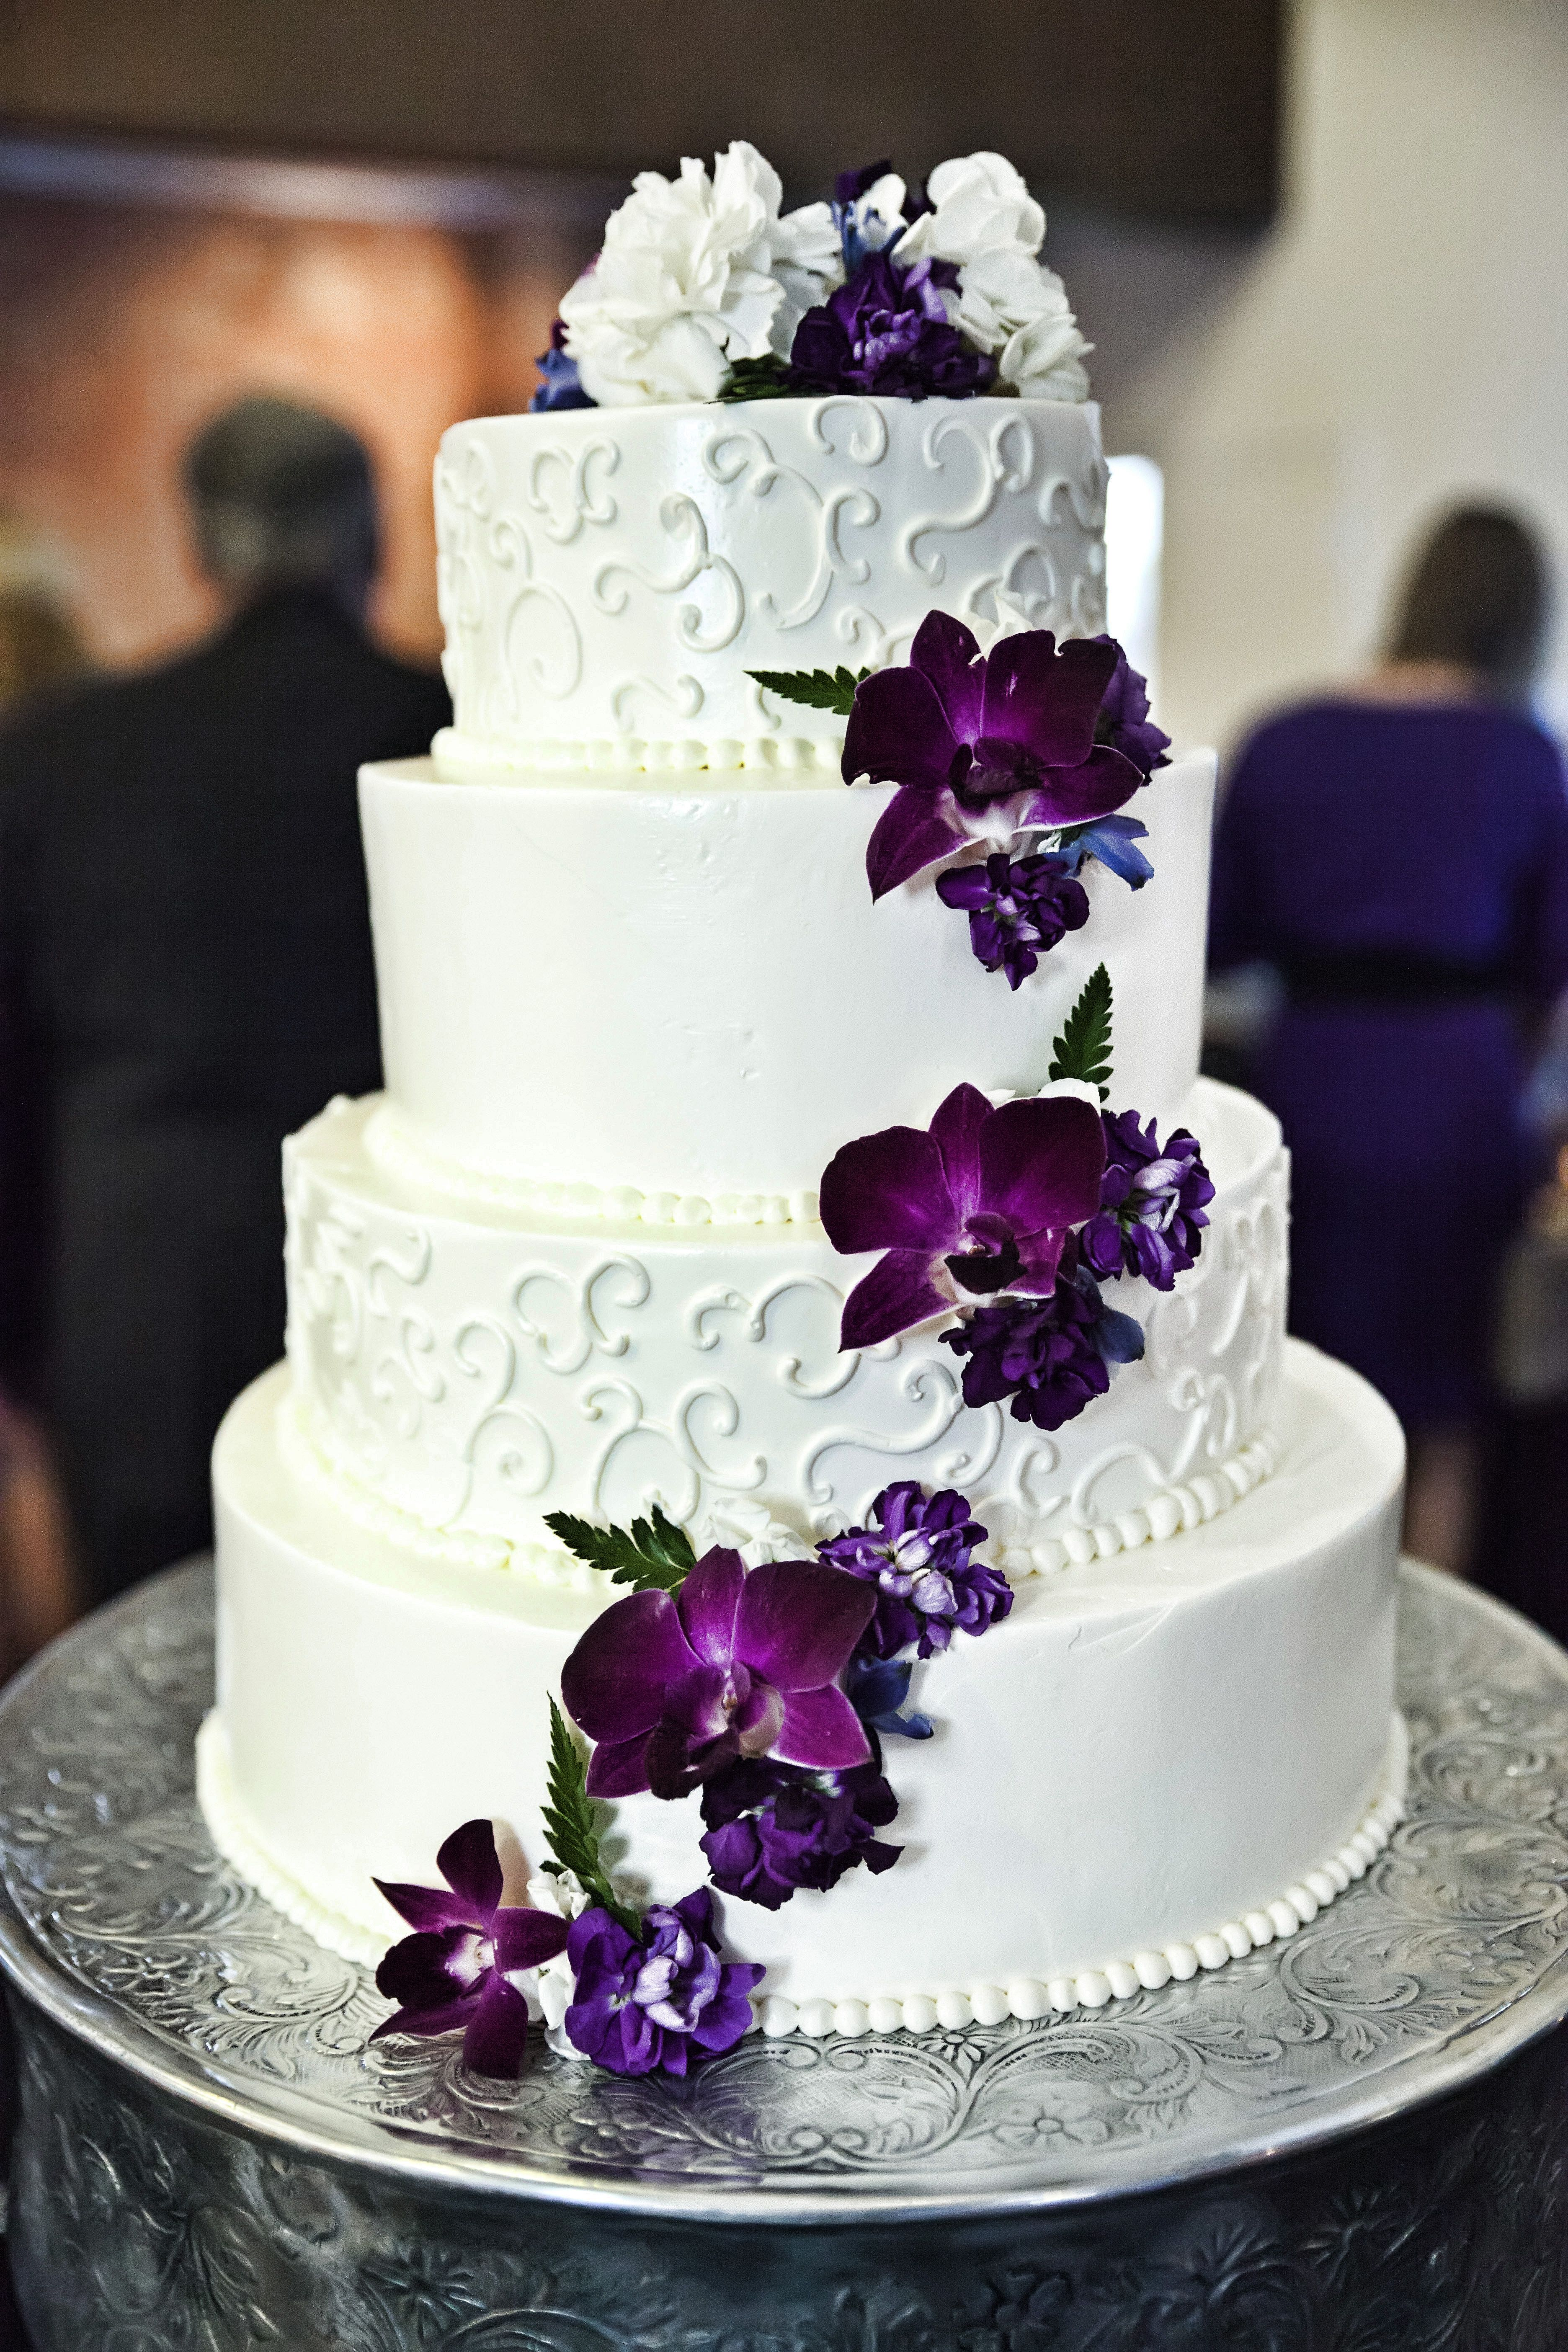 White and purple wedding cake with cascading purple flowers     White and purple wedding cake with cascading purple flowers   Copyright   Bello Romance Photography